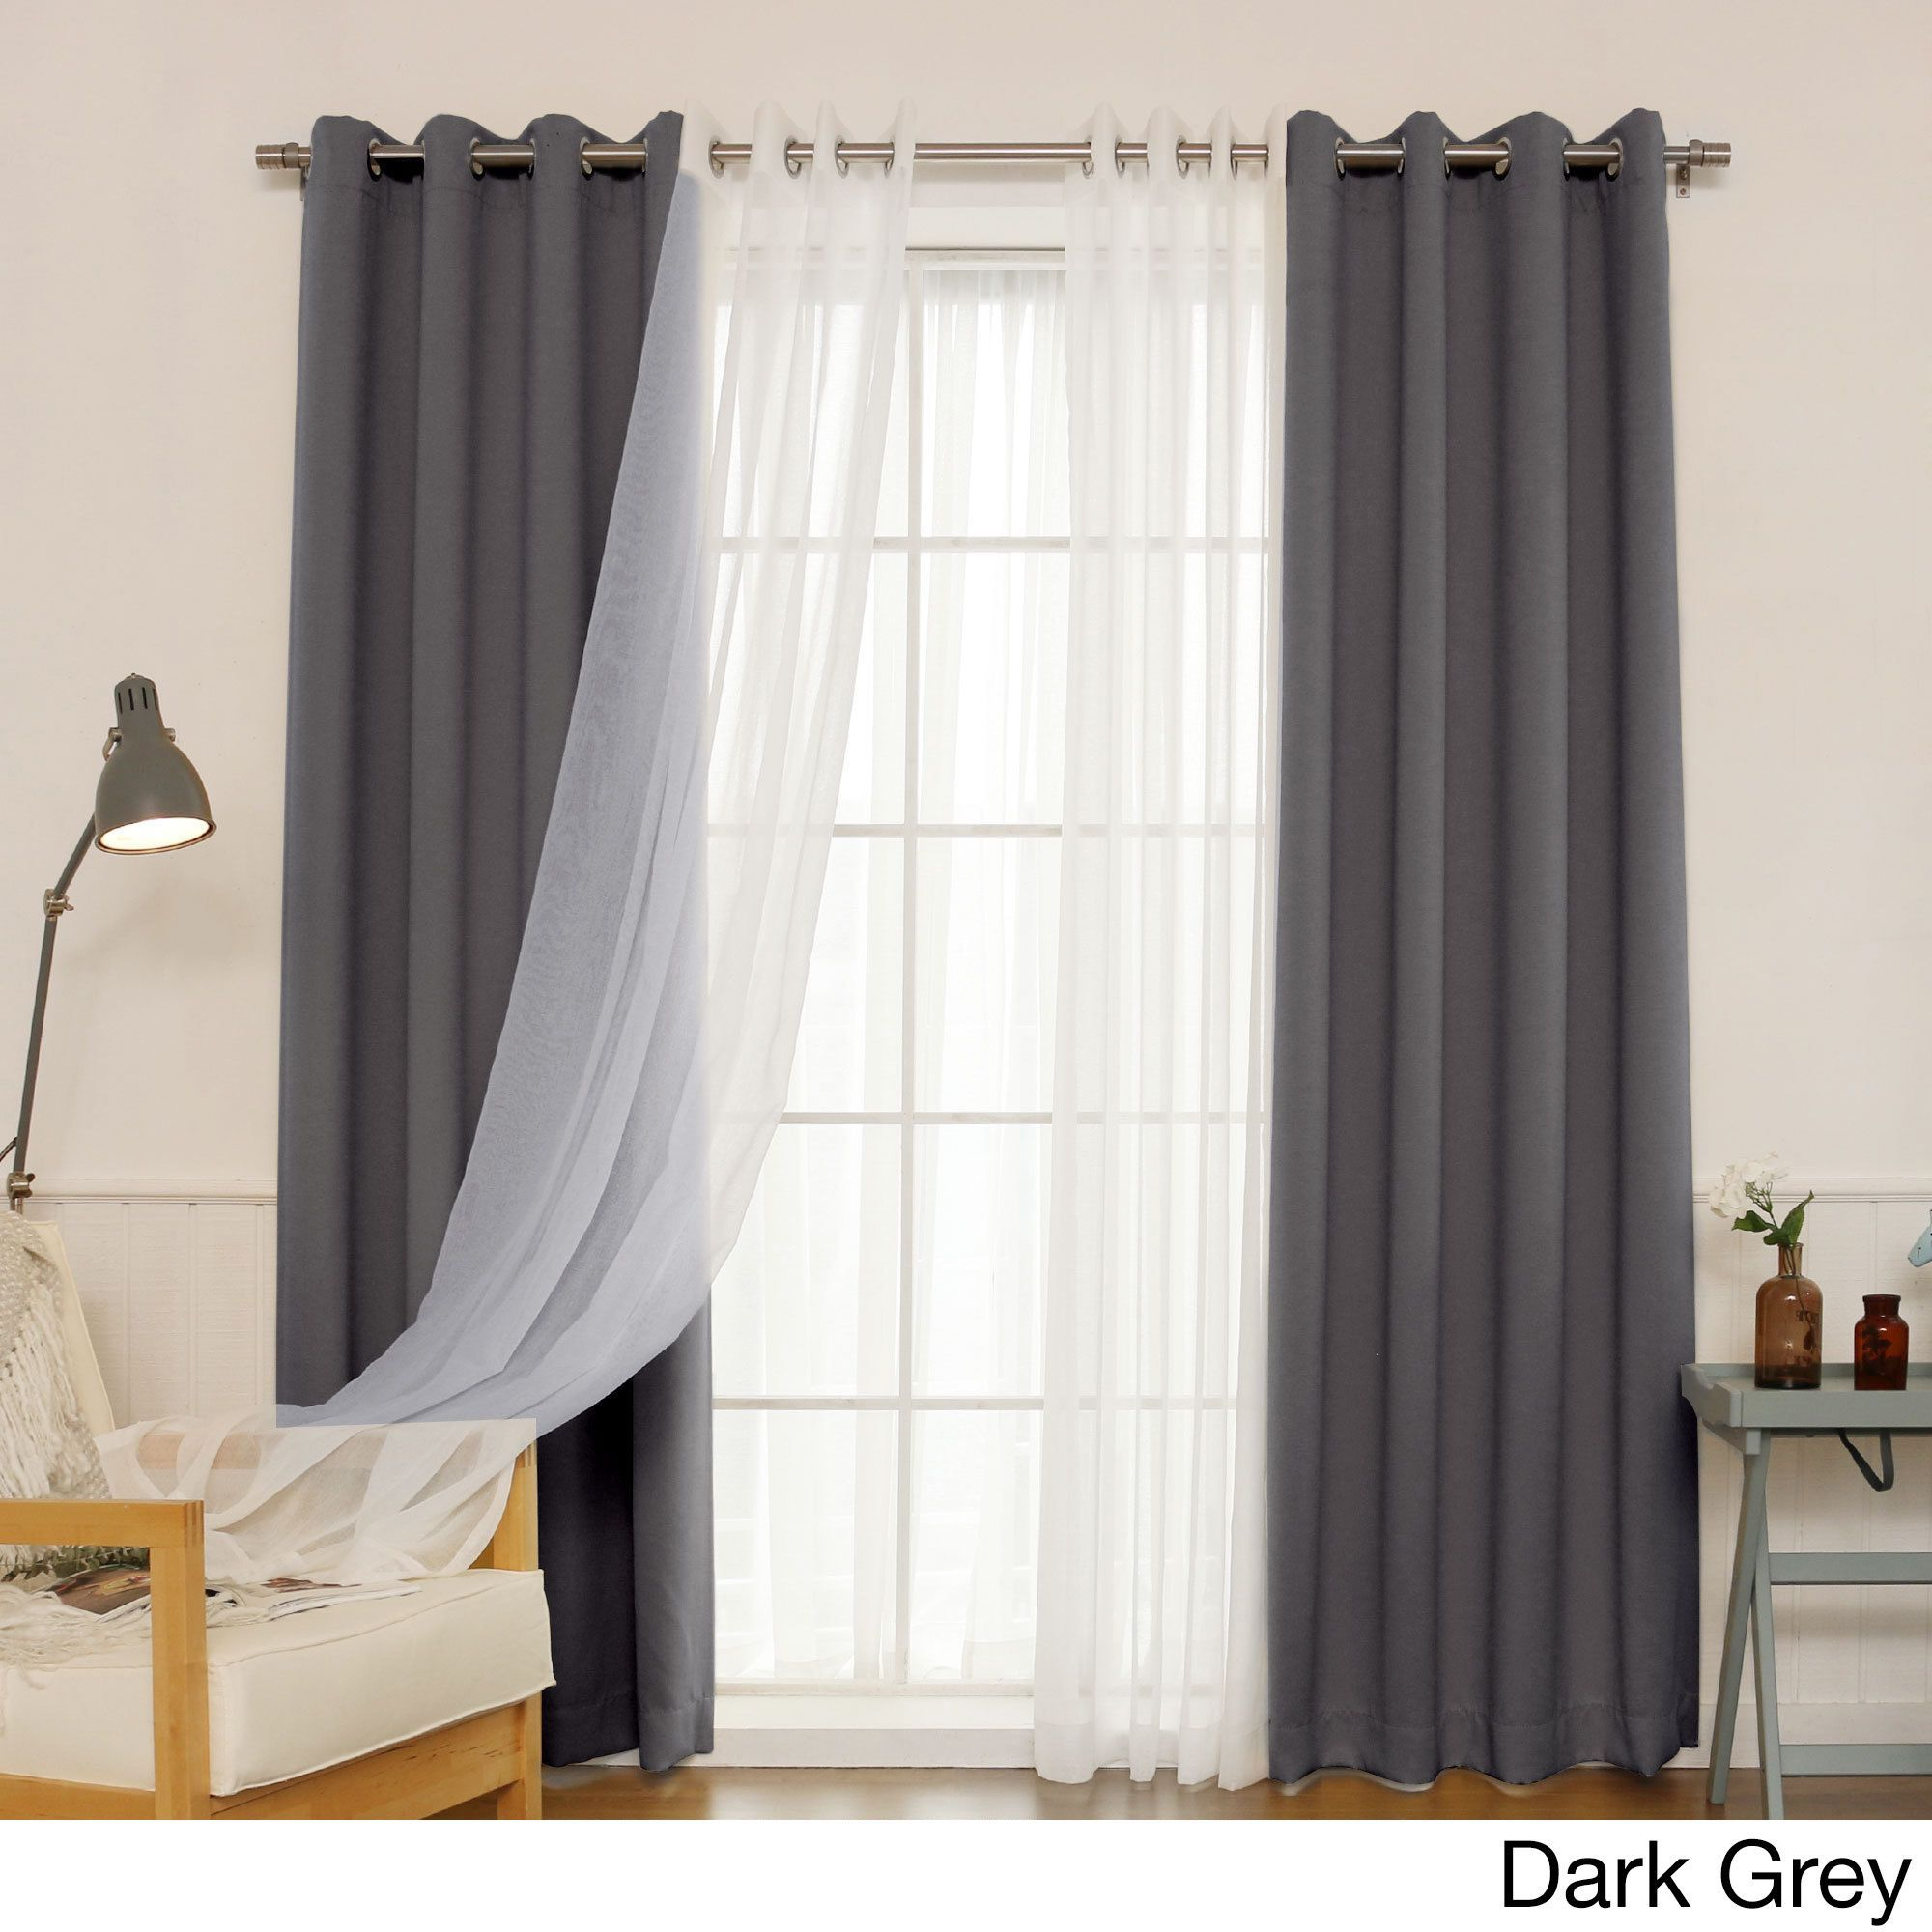 Aurora Home Mix Match Curtains Blackout And Muji Sheer 84 Inch Silver Grommet 4 Piece Curtain Panel Pair